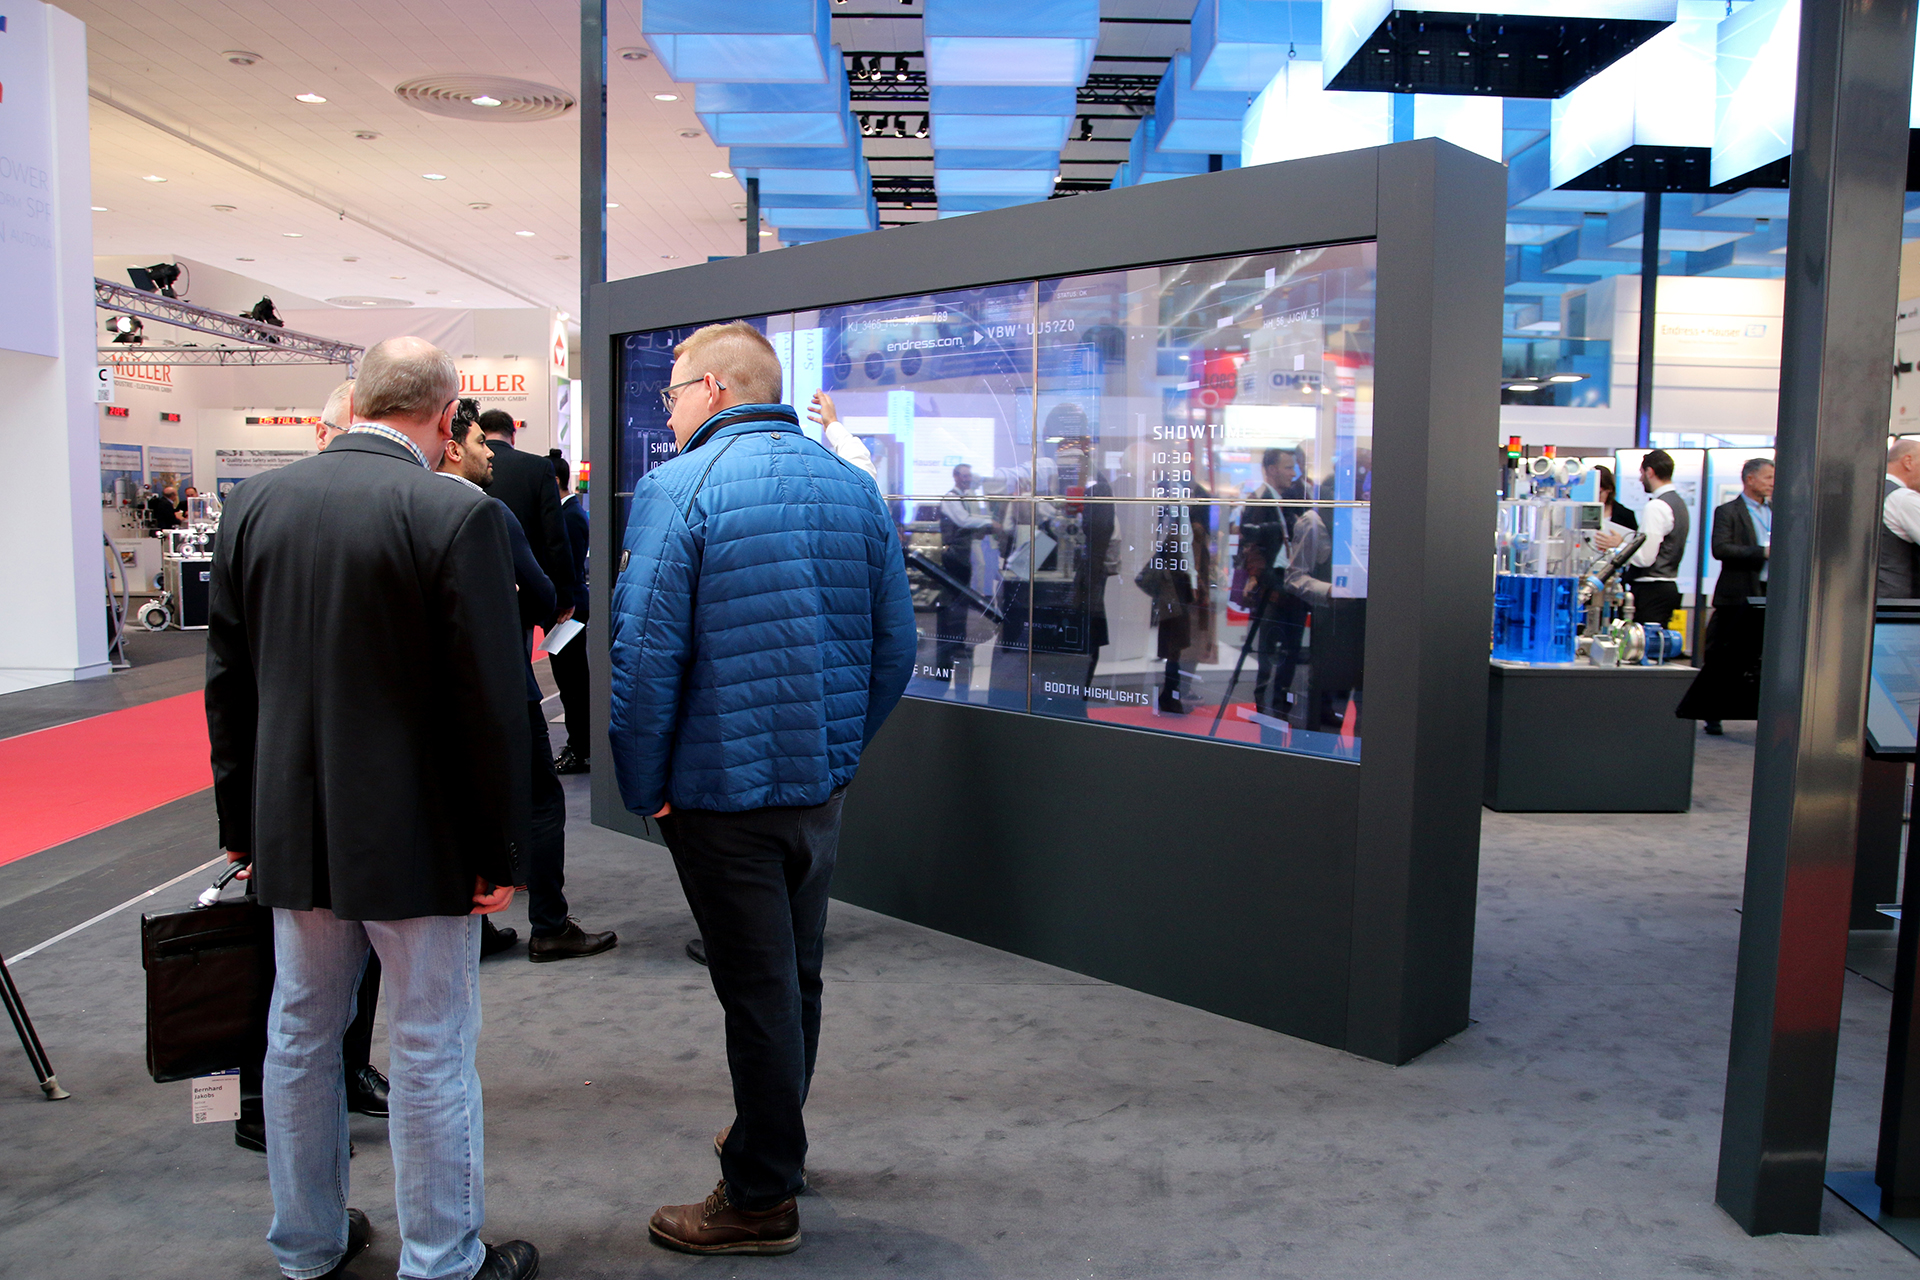 With a transparent, interactive OLED Powerwall, Endress & Hauser presented its products and services at HMI.